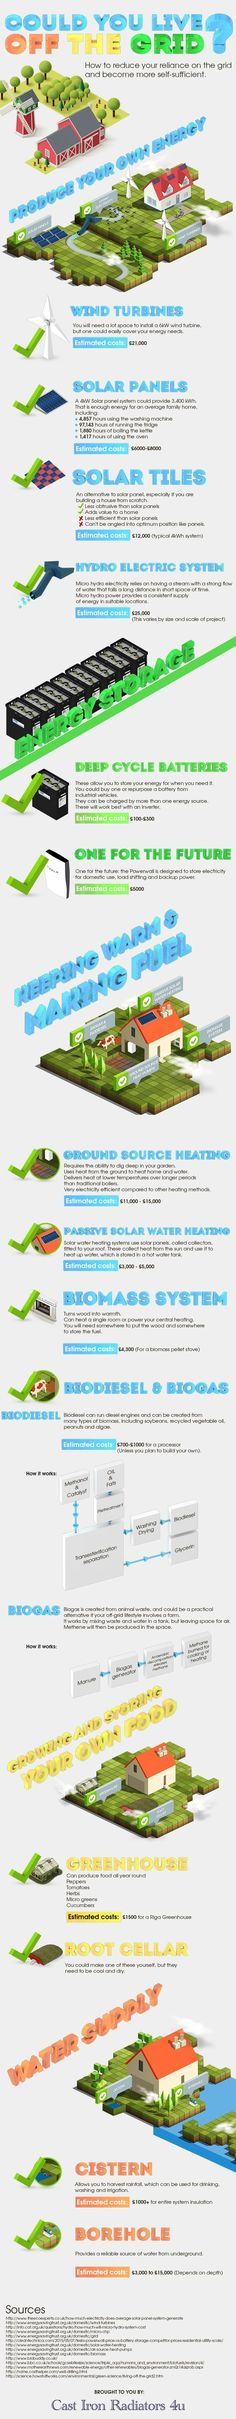 Here's how YOU can live off the grid!